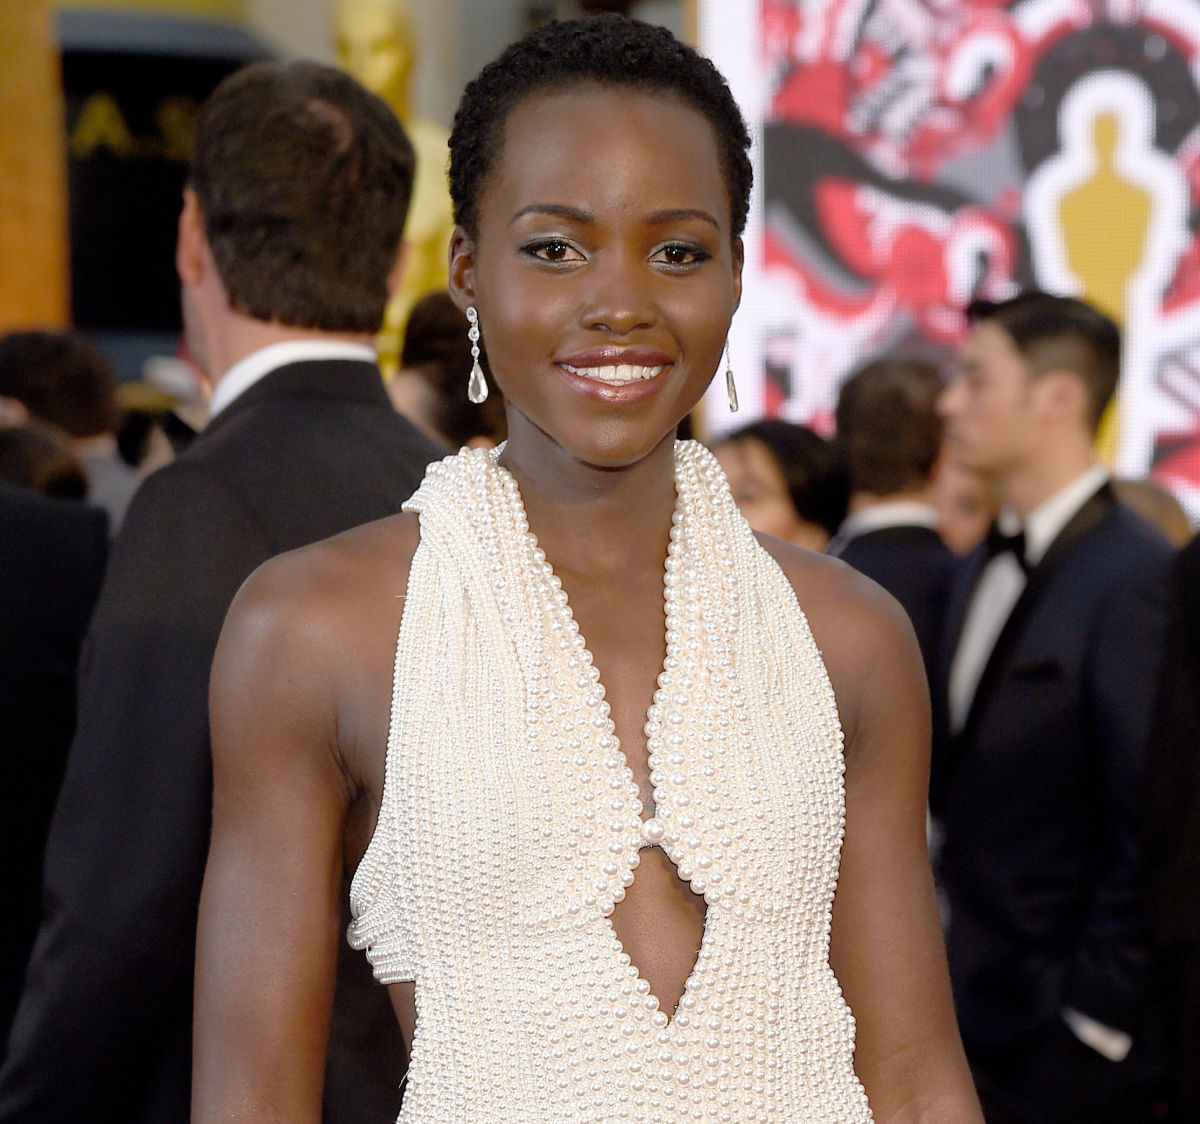 Lupita Nyong'o at the 2015 Oscars. Photo: Kevork Djansezian/Getty Images